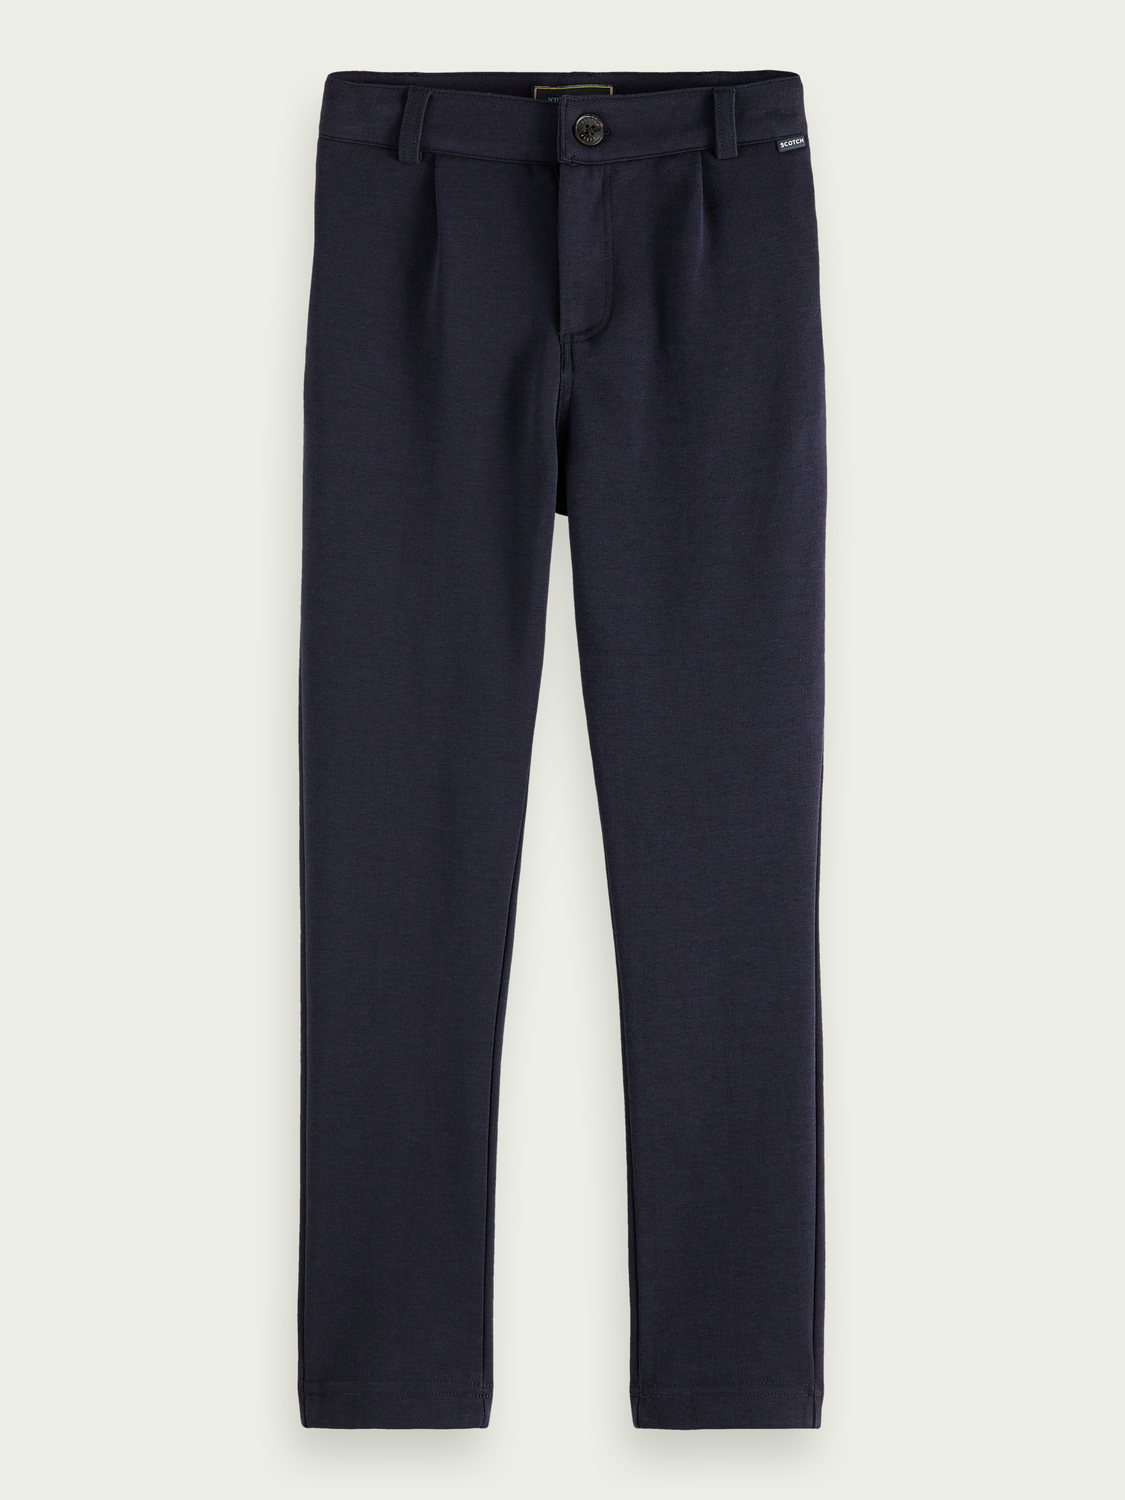 Boys Loose tapered fit sweatpants